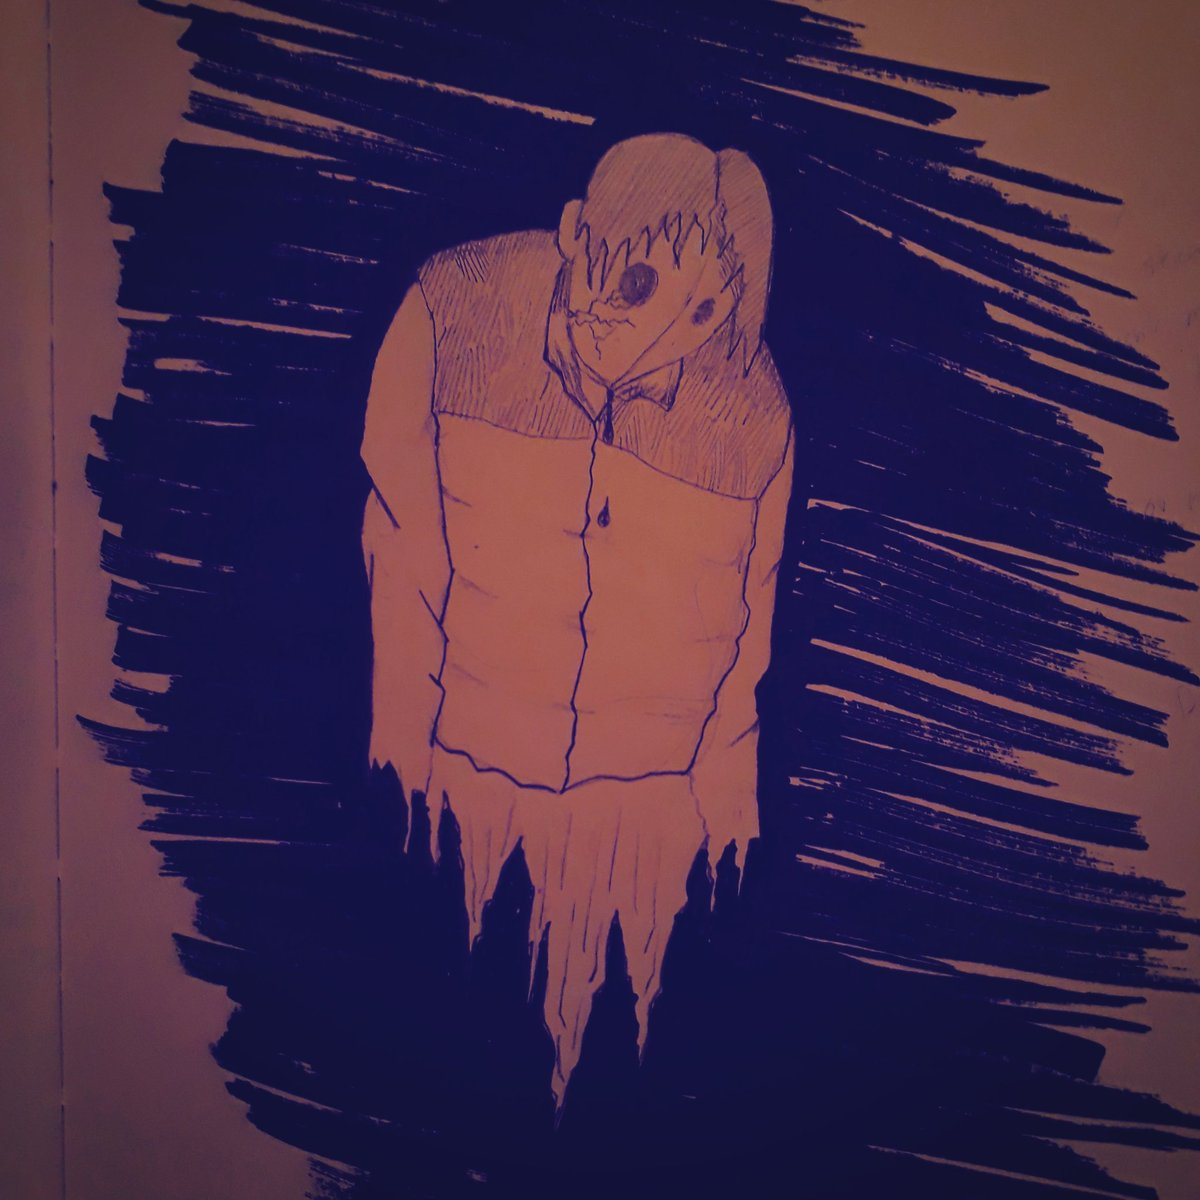 #NightlyDrawing 95 Just because you've never seen tears in my eyes Doesnt mean I've never had feelings Just because I don't share Doesn't mean I don't care Probably means I never know what I'm feeling Or maybe in another life it'd be there  Did u ever think about that?....Friend pic.twitter.com/UF3mnVMqHI